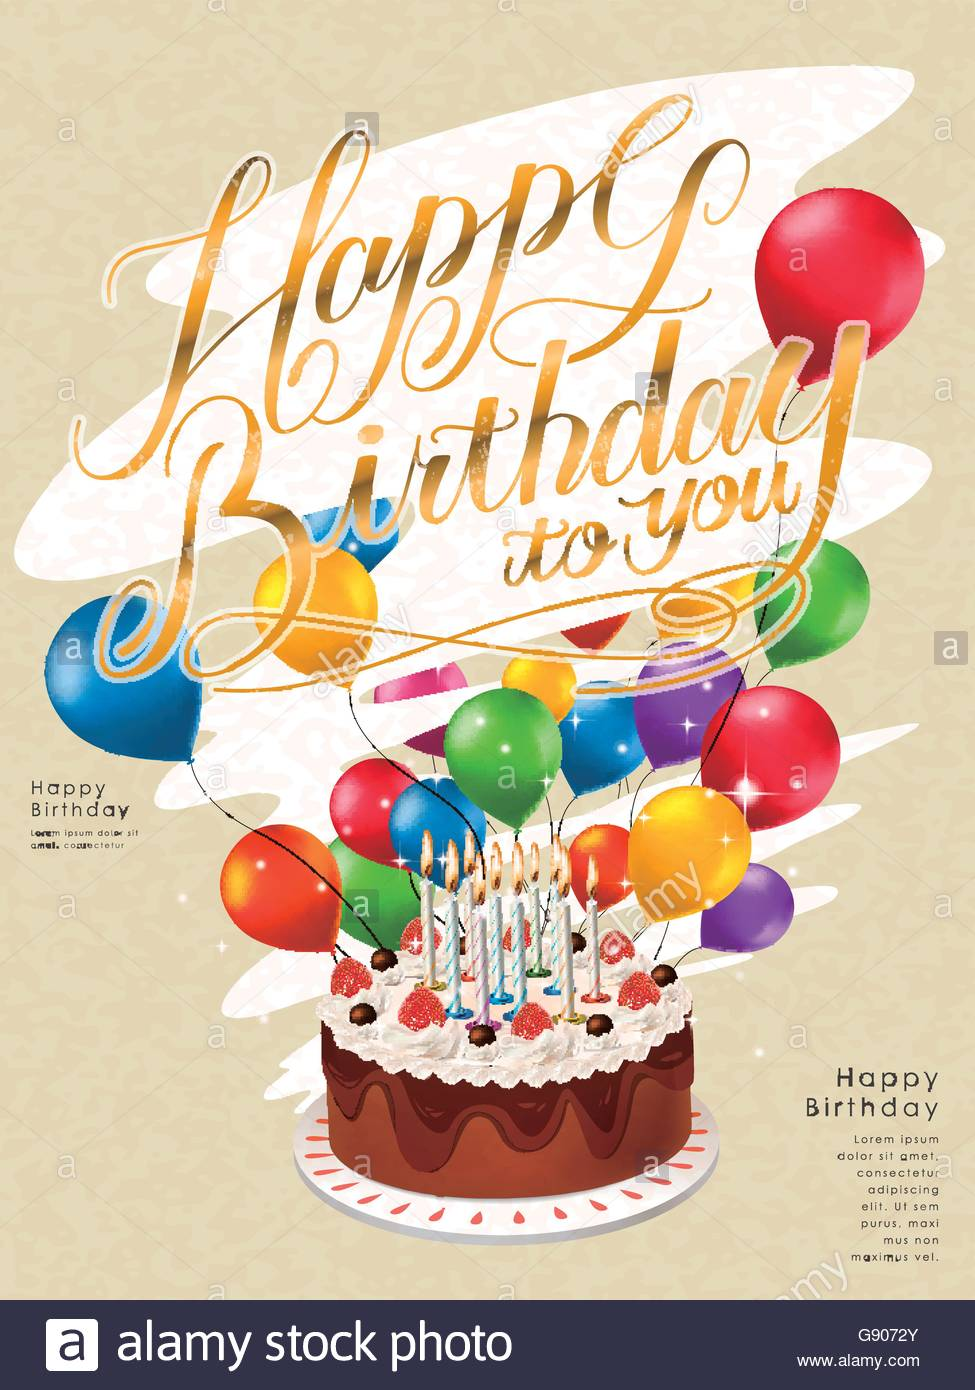 happy b day poster ; happy-birthday-poster-template-design-with-lovely-cake-and-balloons-G9072Y